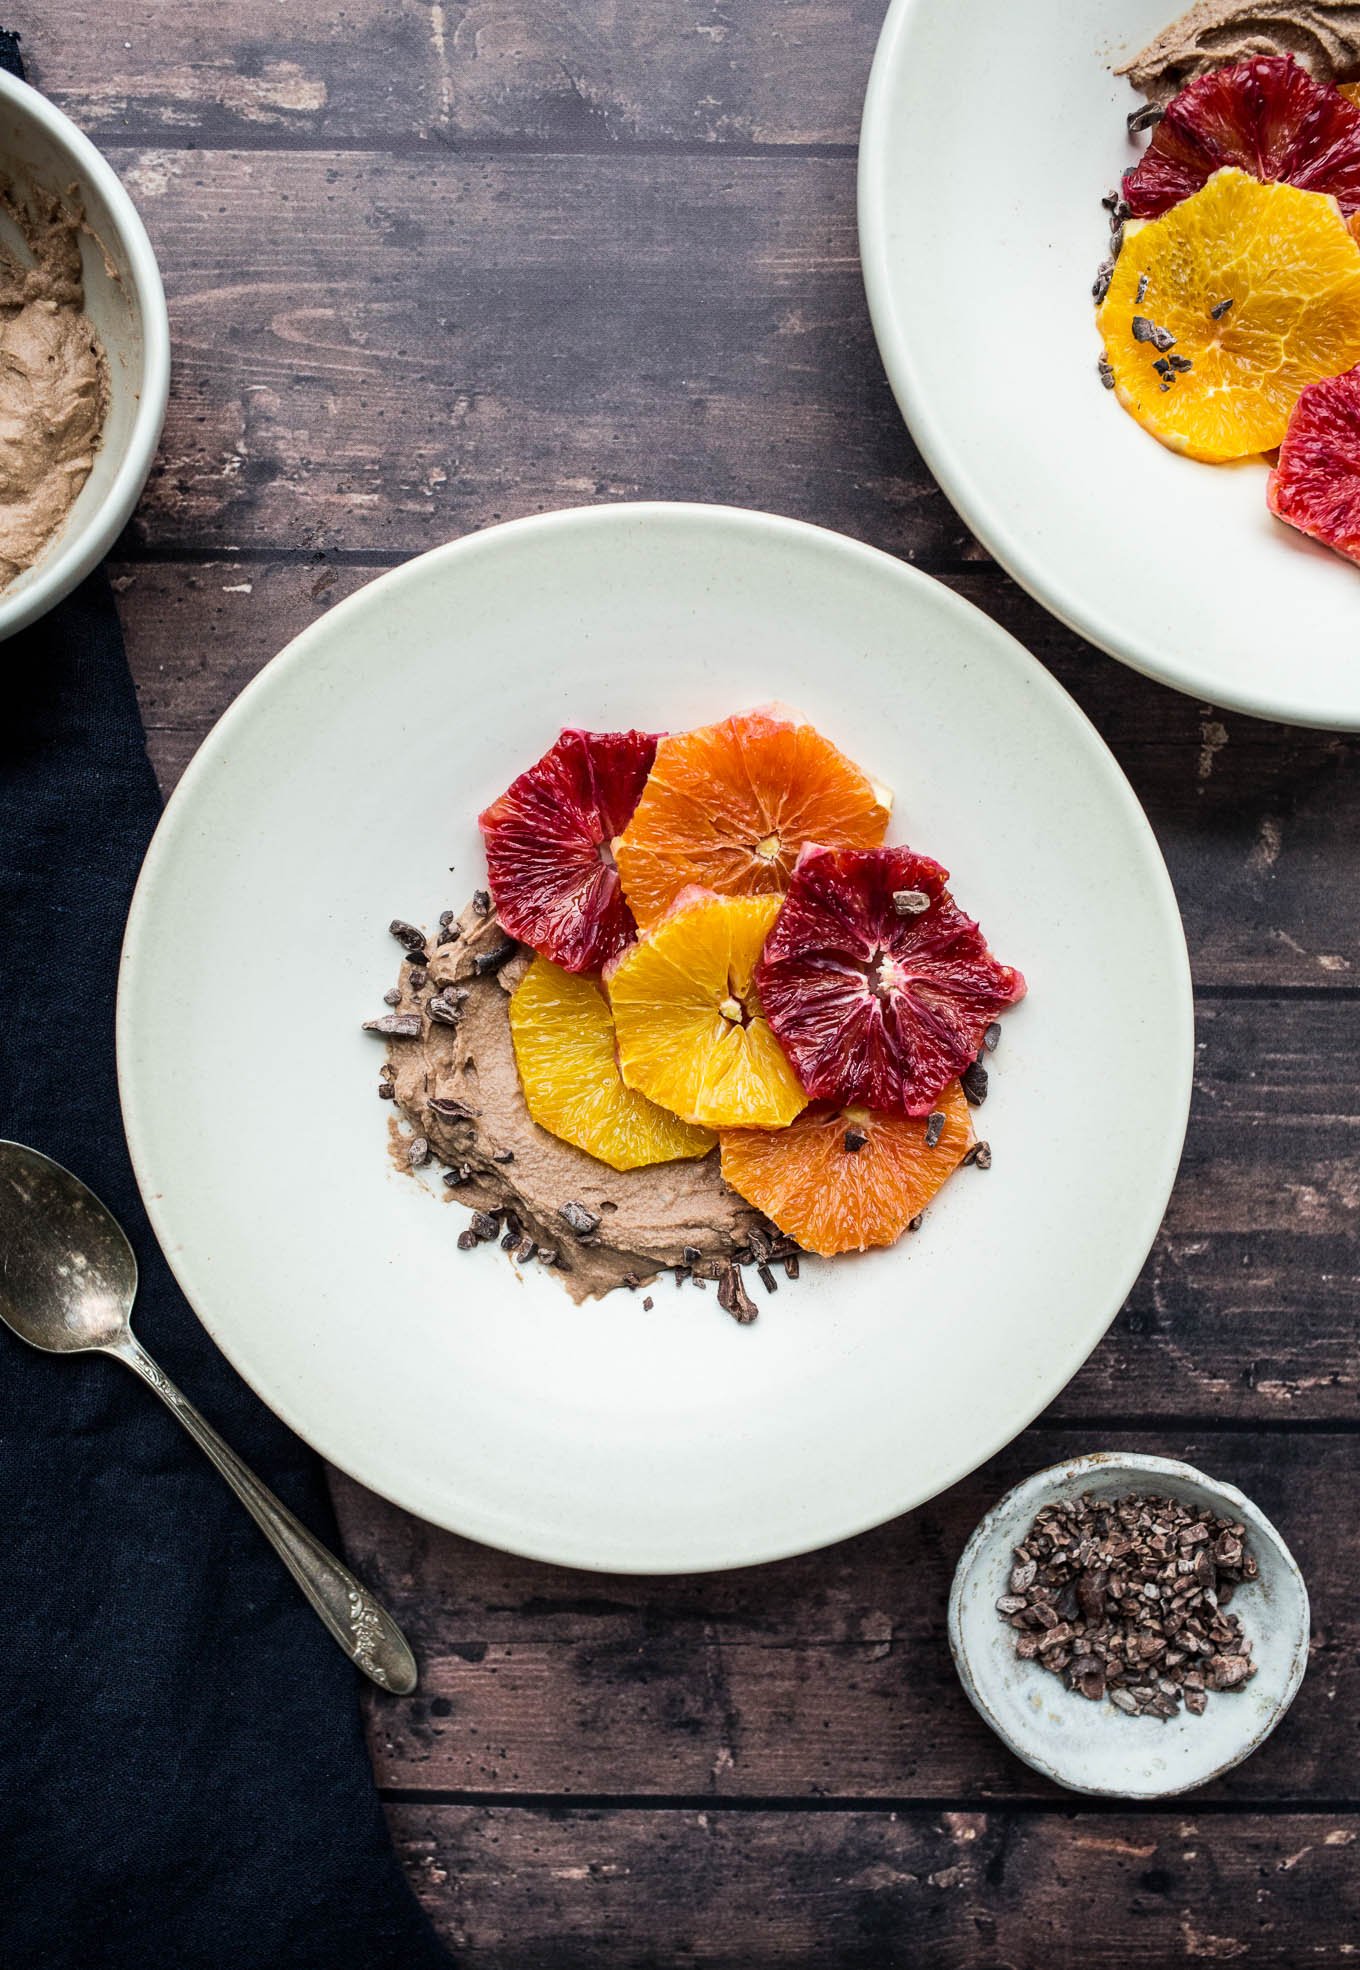 Roasted Winter Citrus with Chocolate Coconut Whipped Cream (gluten-free, vegan, refined sugar-free) | saltedplains.com